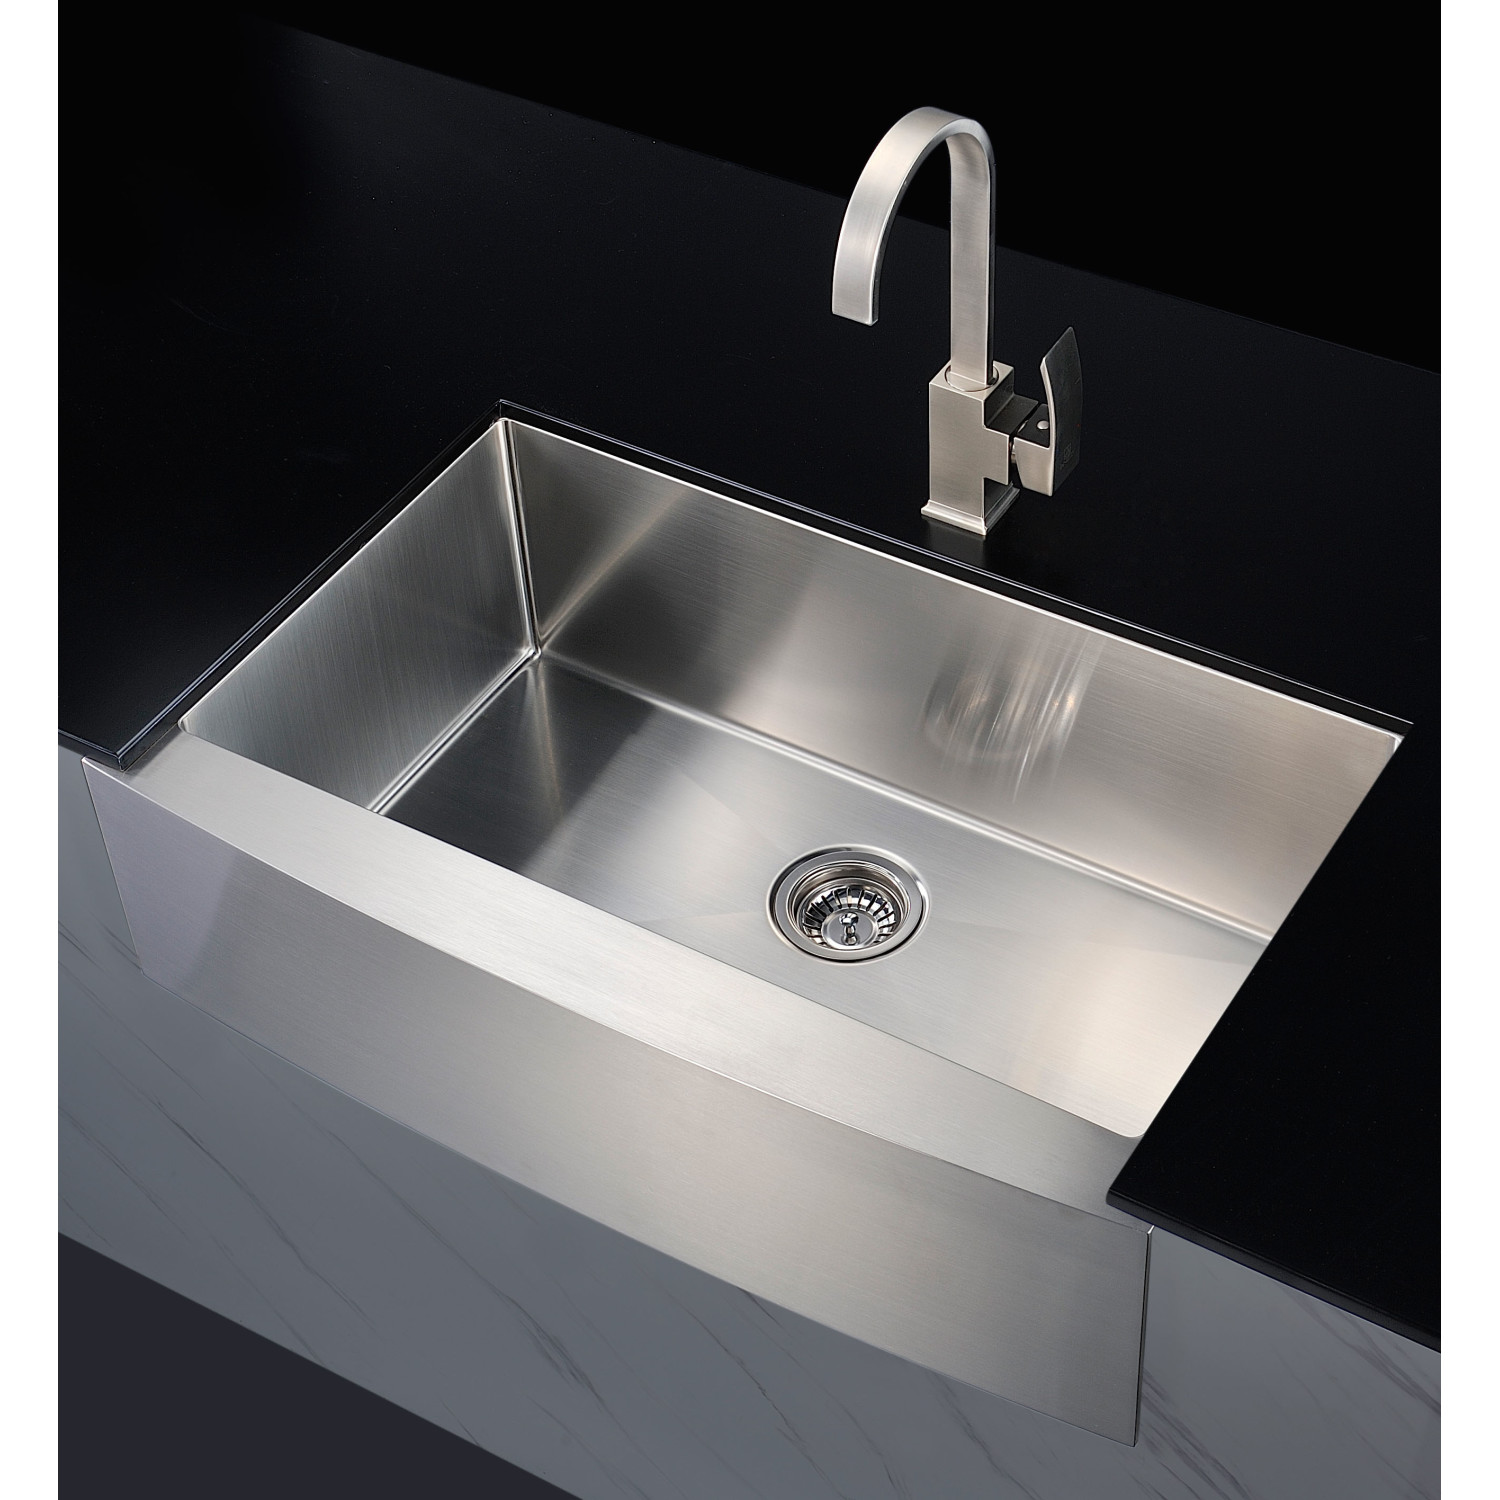 Elysian Farmhouse Stainless Steel 32 In 0 Hole Single Bowl Kitchen Sink In Brushed Satin Anzzi